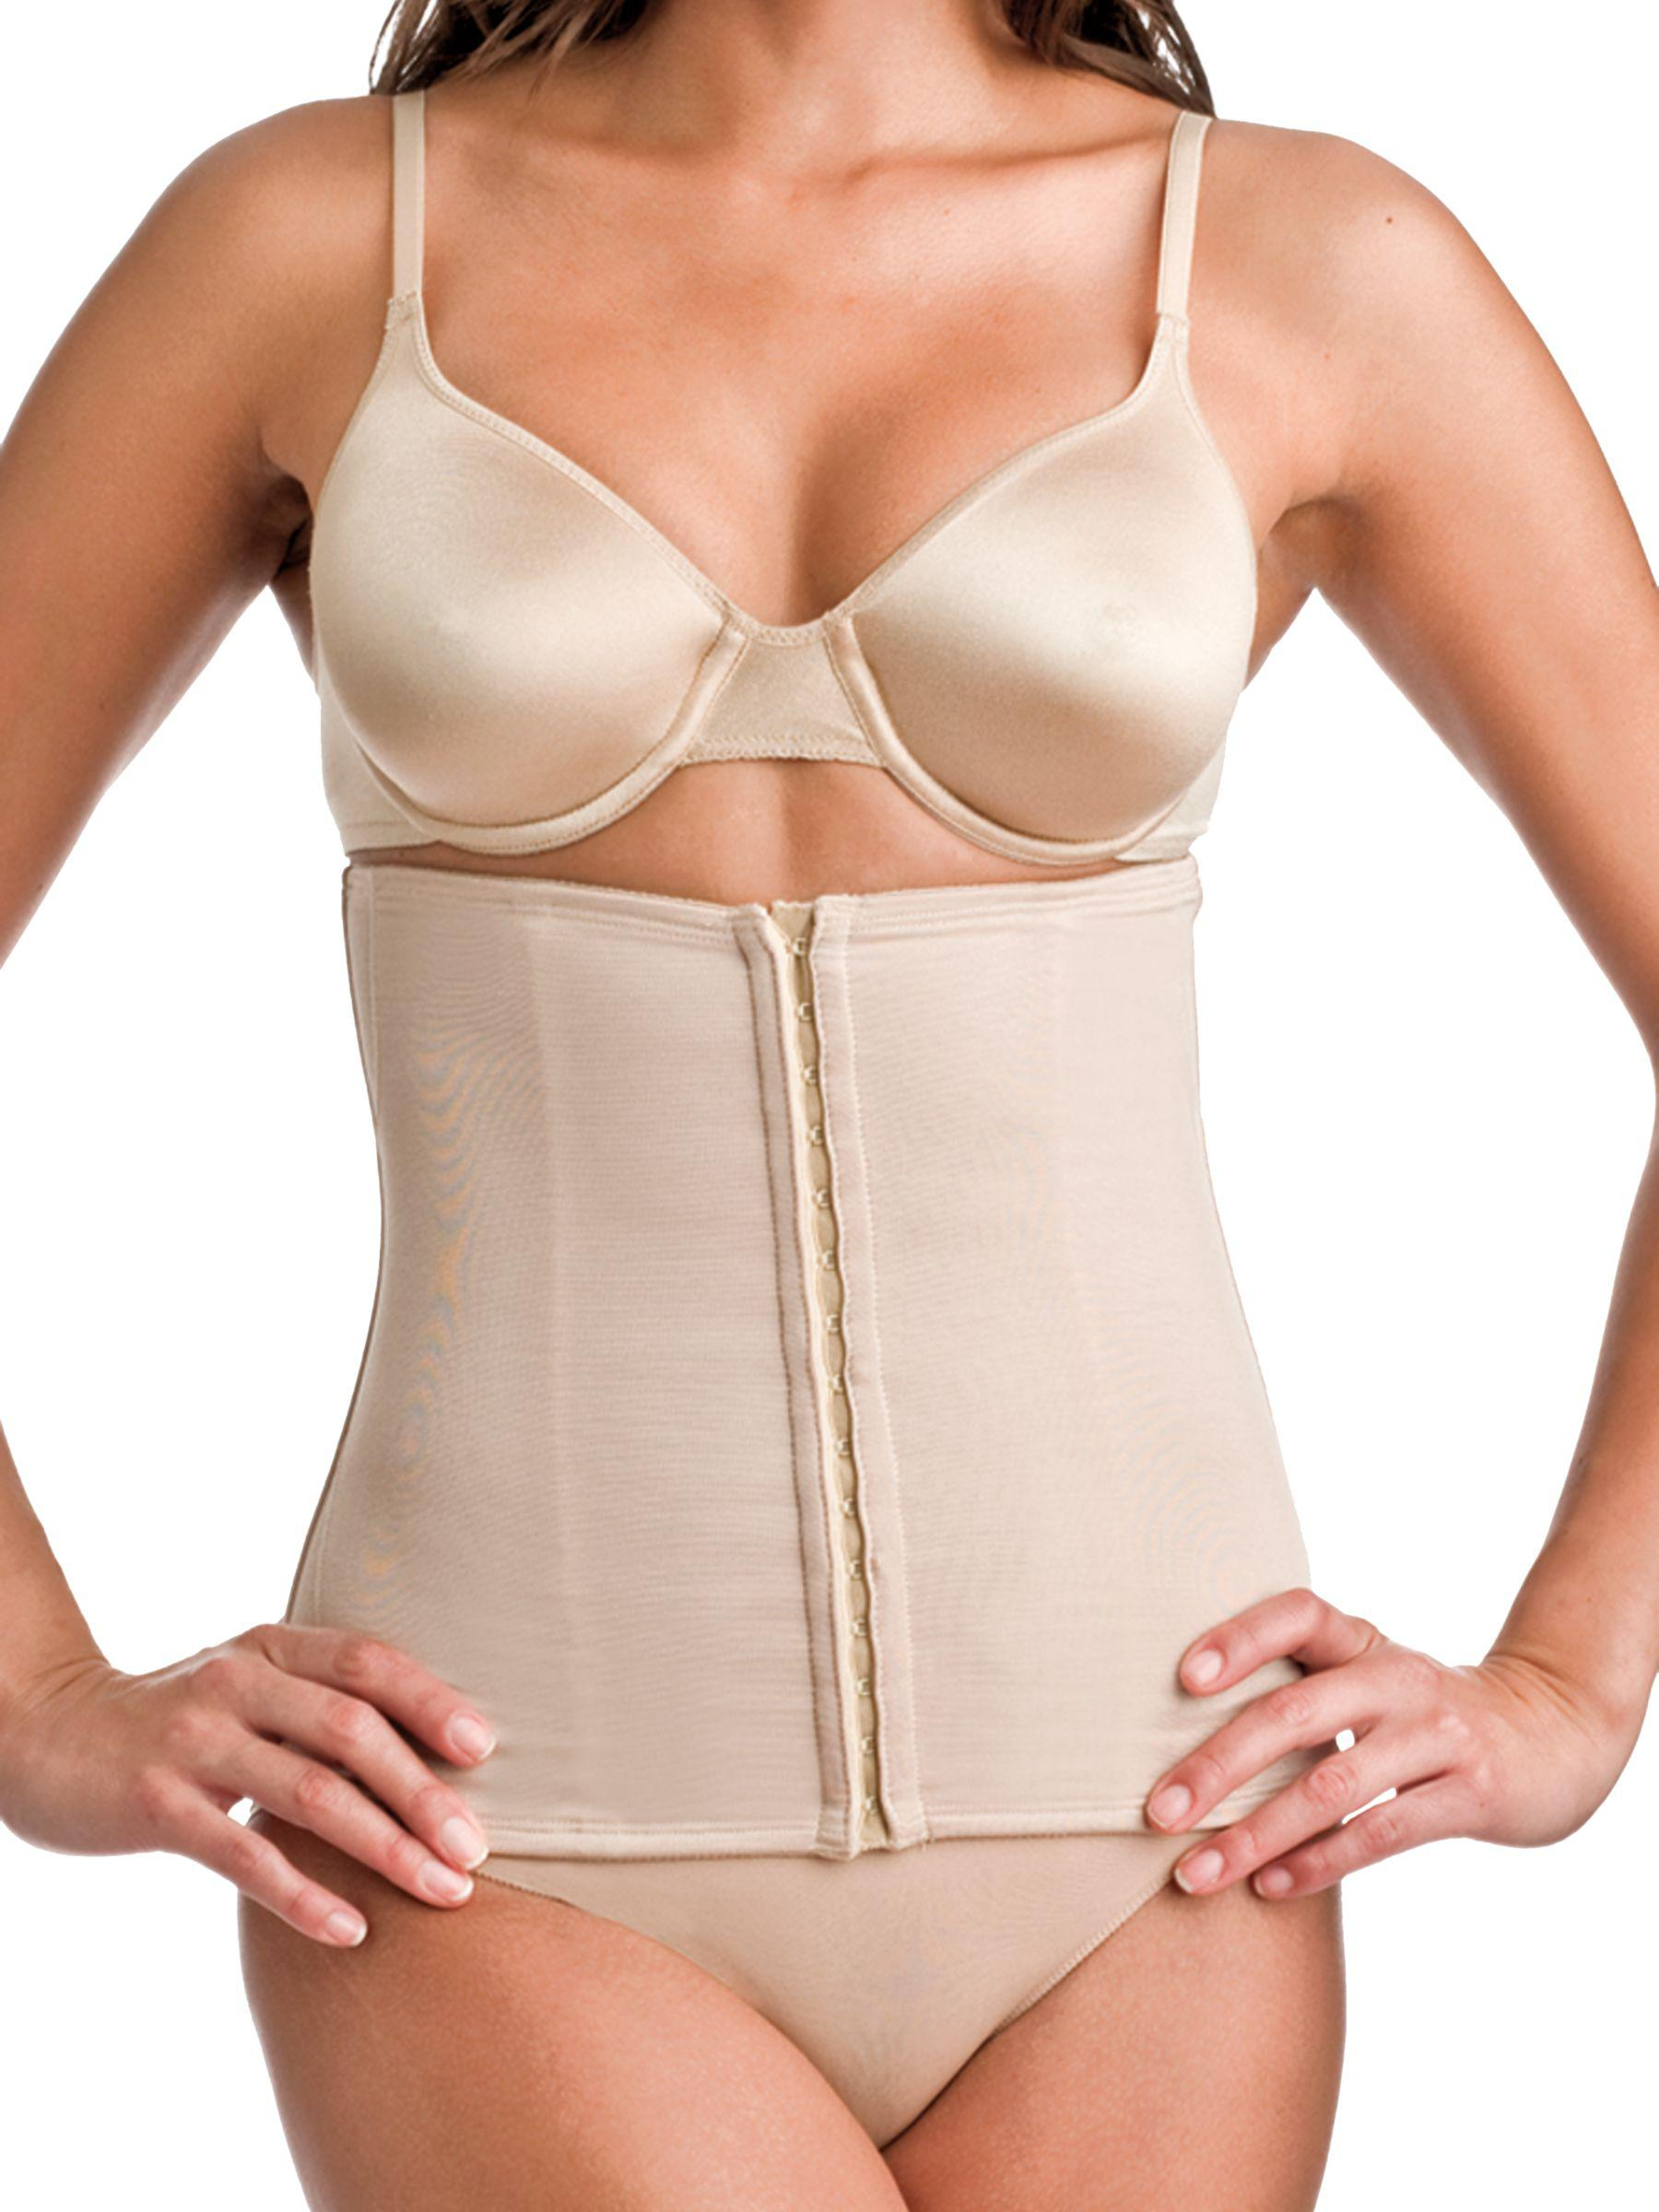 a356ba4525 Miraclesuit. Women s Natural Waist Cincher. £40 From John Lewis and Partners